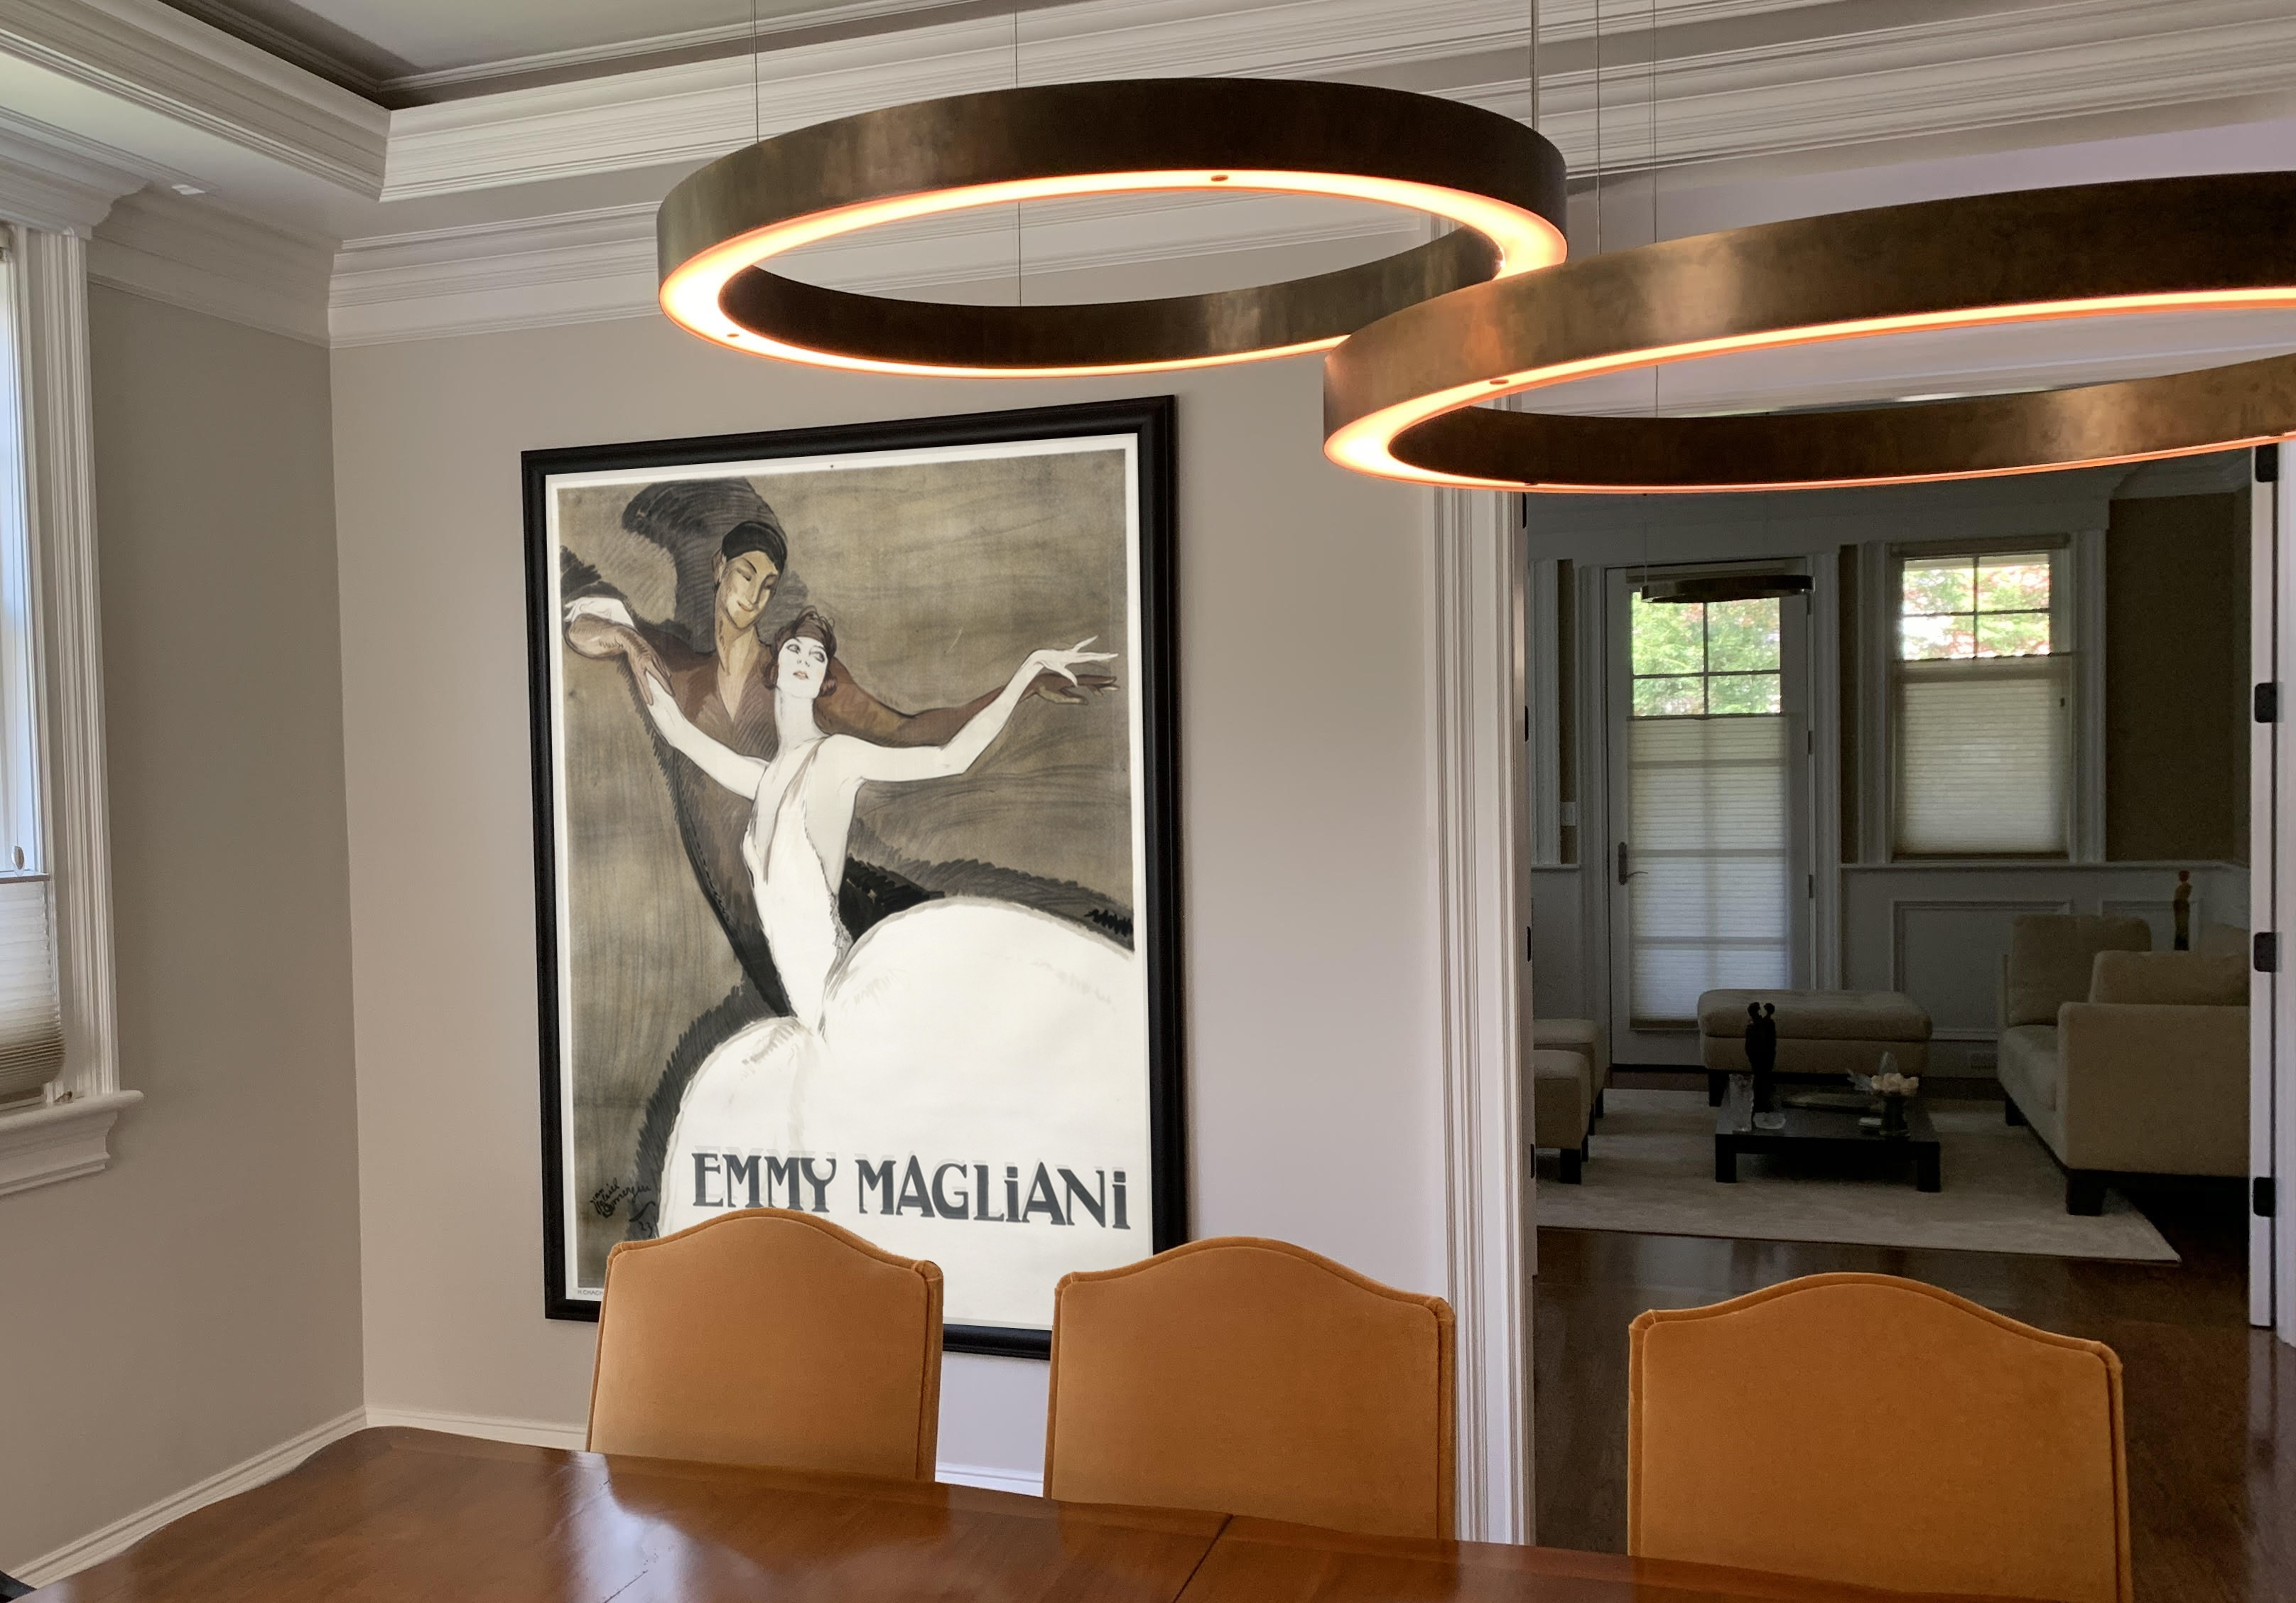 warm dining room with abstract lights and poster with man and woman ballet dancers; brown, white, orange